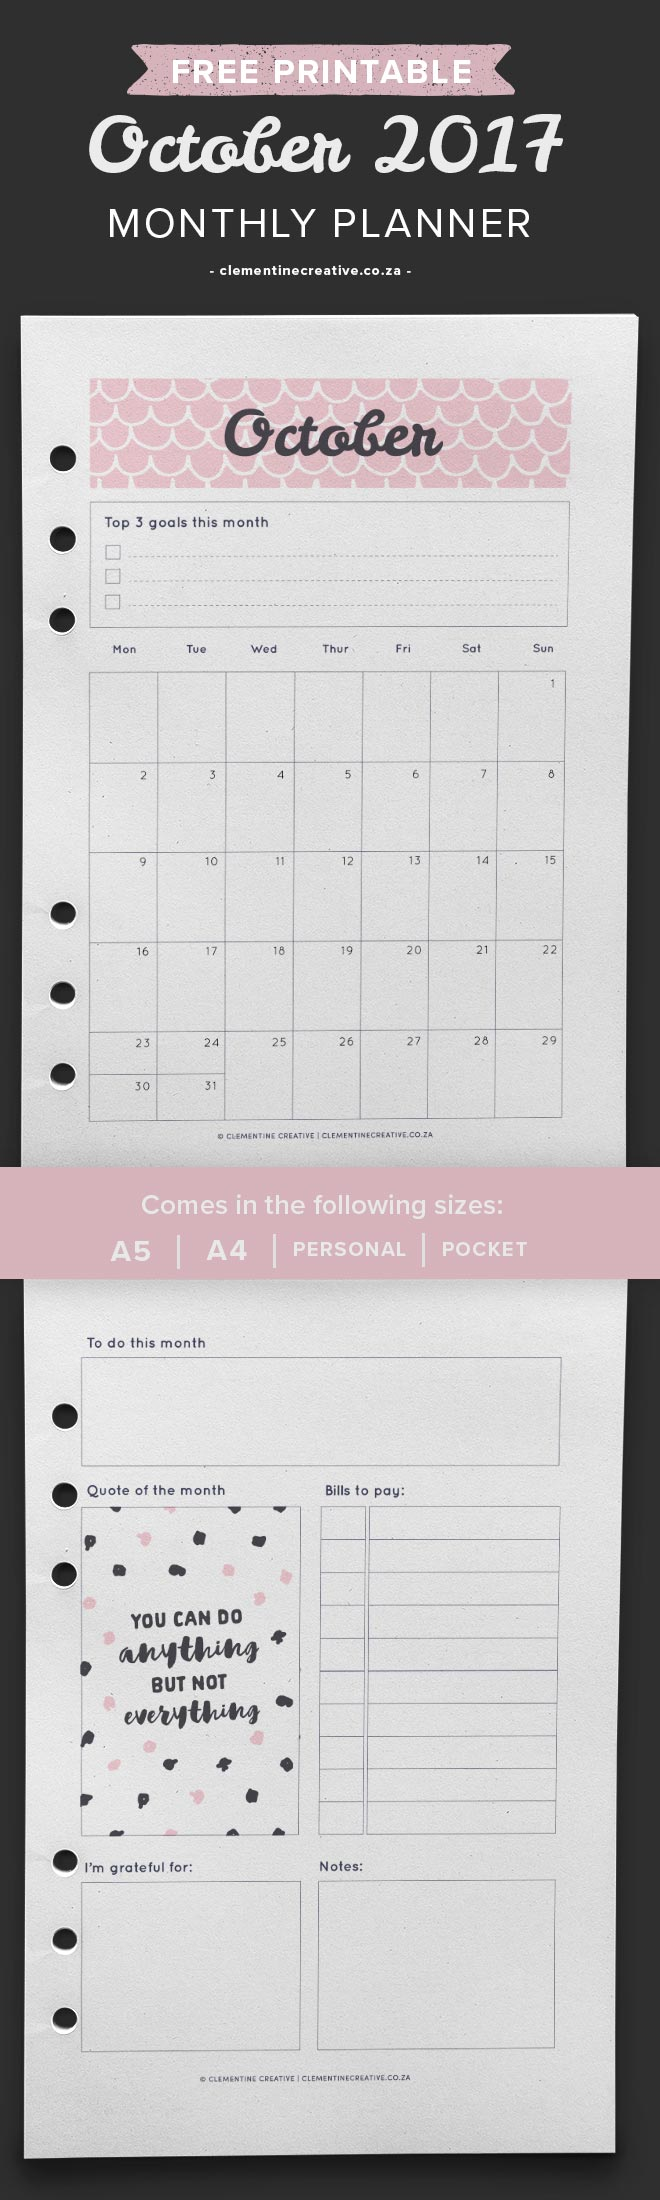 Free printable October 2017 calendar and monthly planner. Available in A4, A5, Personal and Pocket sizes. Get yours by signing up!